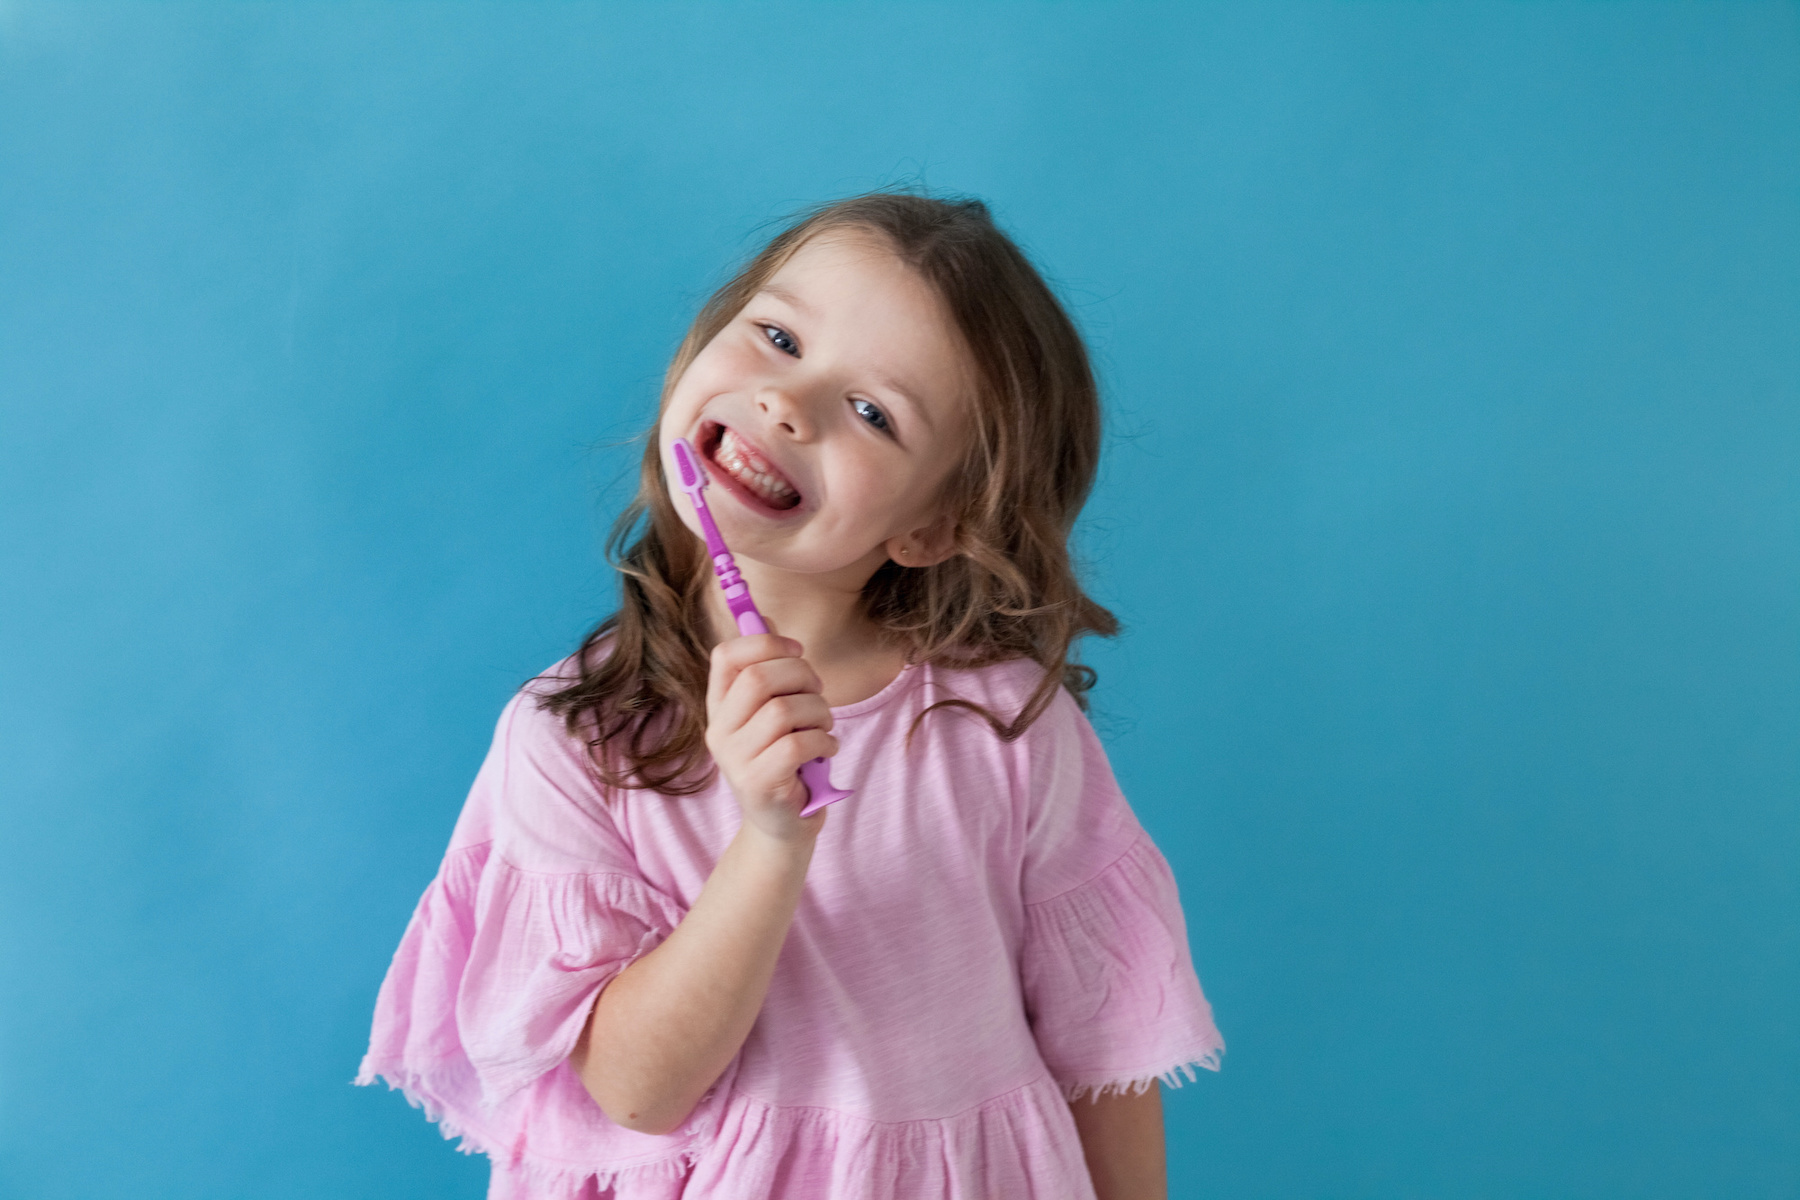 Should Toddlers Use Fluoride? What You Need To Know